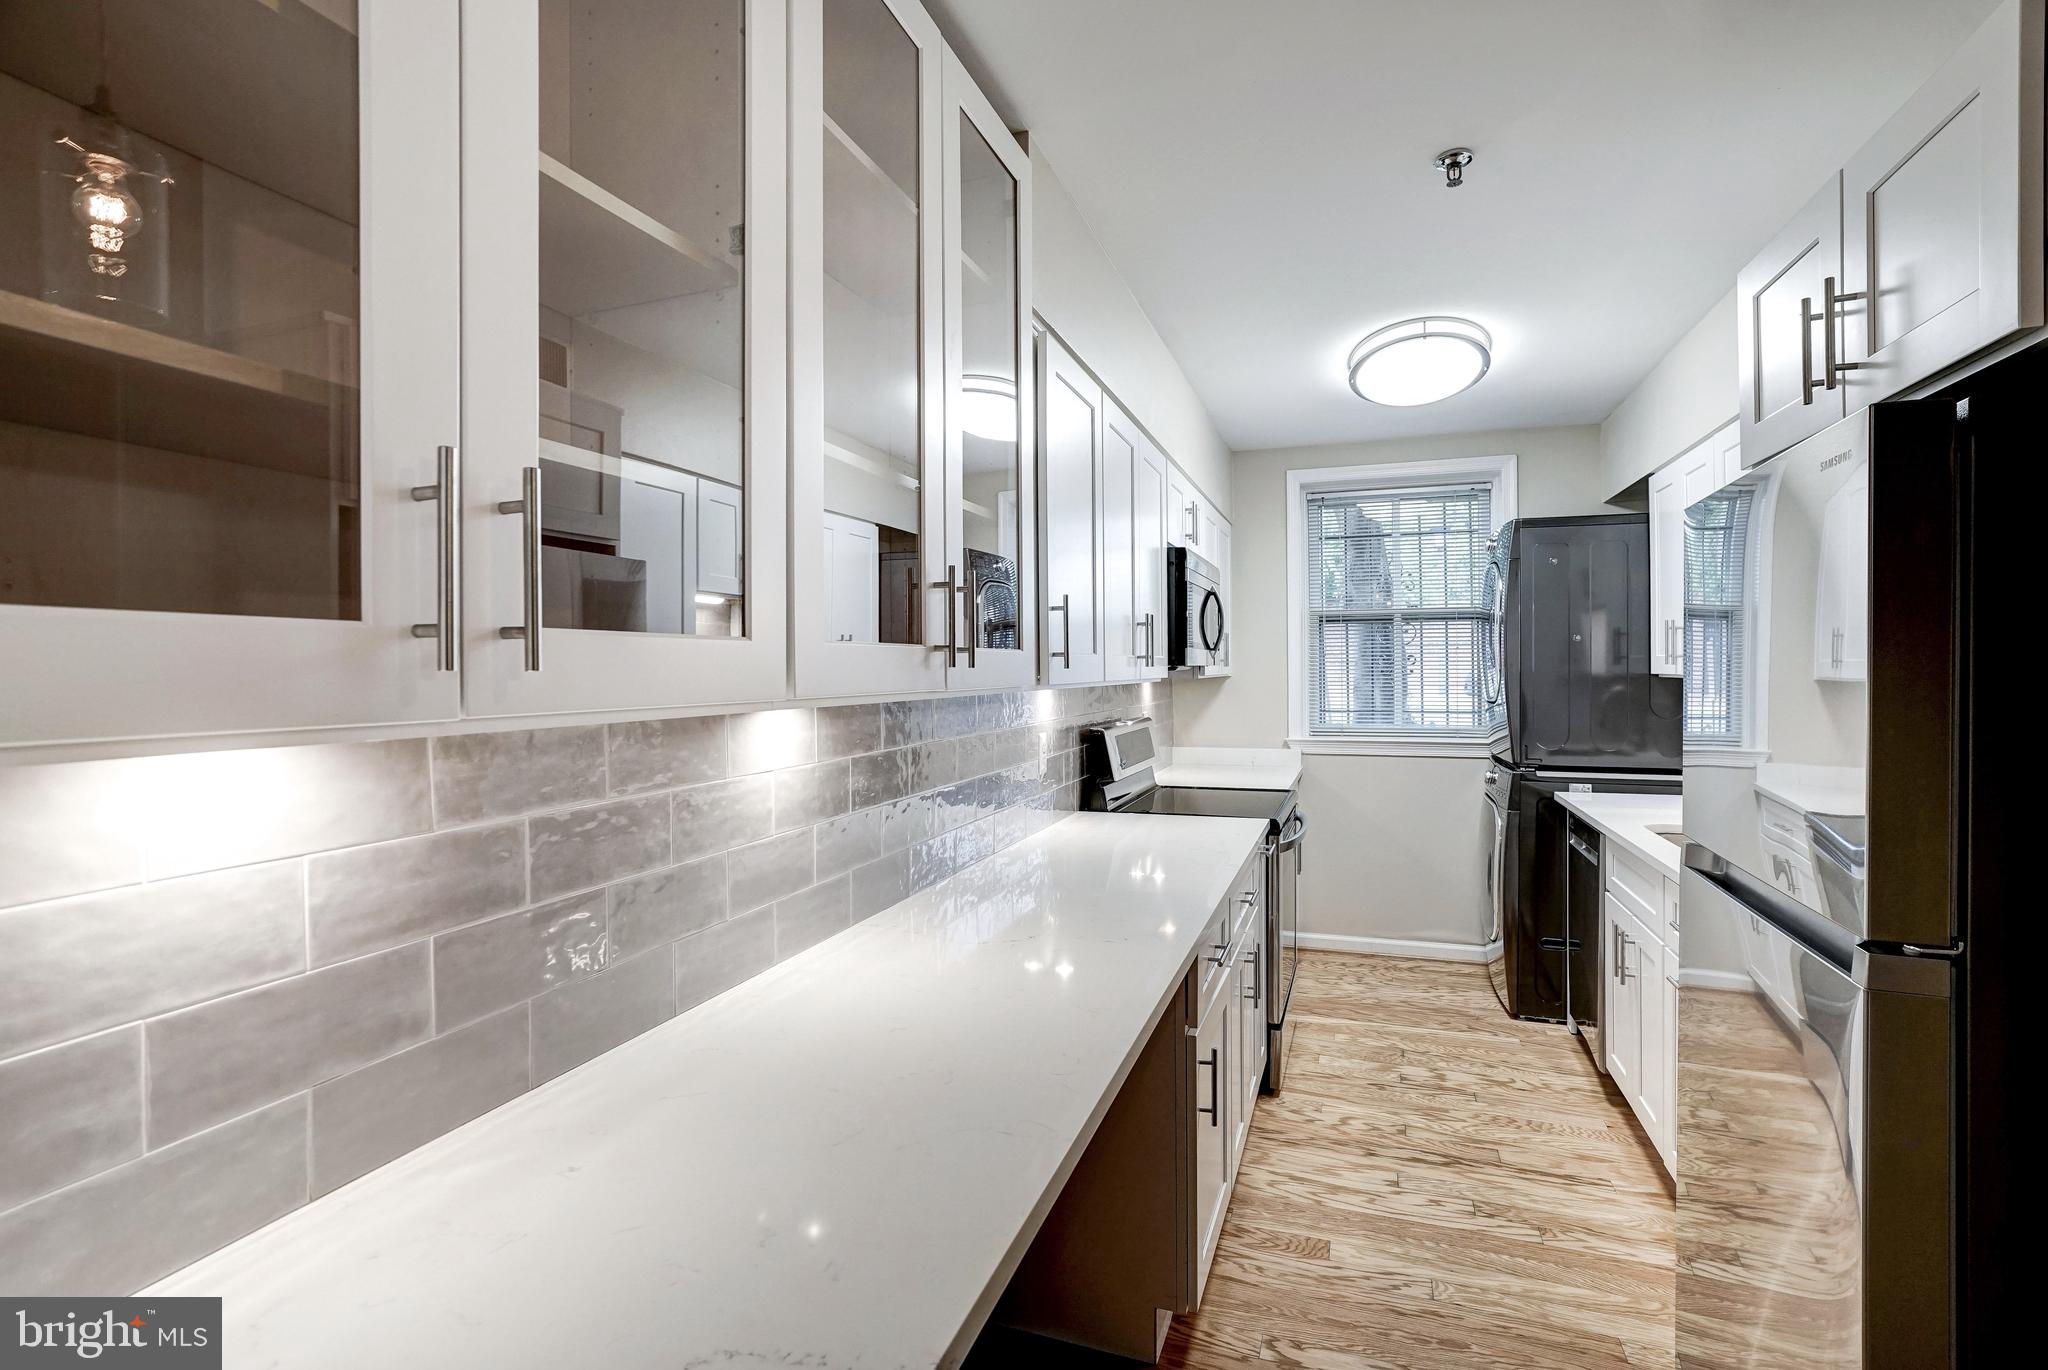 Welcome home to this remodeled, elegant condo in the historic Swann-Daingerfield building built in 1802.  This exclusive Victorian building is located in the heart of Old Town, & was recently added to the National Register of Historic Properties.  Step through your private entrance to a large living room featuring a cozy wood burning fireplace, charming built-ins, gleaming hardwood flooring, with plantation shutters throughout.  You~ll find additional built-ins in the dining room, along with stunning French doors that open to a lovely, brick patio.  The gourmet kitchen features upgraded quartz countertops, custom cabinetry, & Energy Star stainless steel appliances.  Retreat to a spacious master bedroom with stunning en-suite.  Both bathrooms have been updated with modern vanities, tile and fixtures. This unit is just a few short steps from the tranquil gardens and courtyard featuring a magnificent magnolia tree. Small pets are allowed in this wonderful, inclusive community! Leave your car in the assigned parking spot (#5), & enjoy a short stroll to the restaurants, unique shops, and farmers market on King Street, as well as the Potomac River, which is just 7 blocks away. It is a comfortable 14-minute walk to the King Street metro station, and only a seven-minute drive to Washington, DC.  Finally, a large secure storage unit is included.  Welcome home!